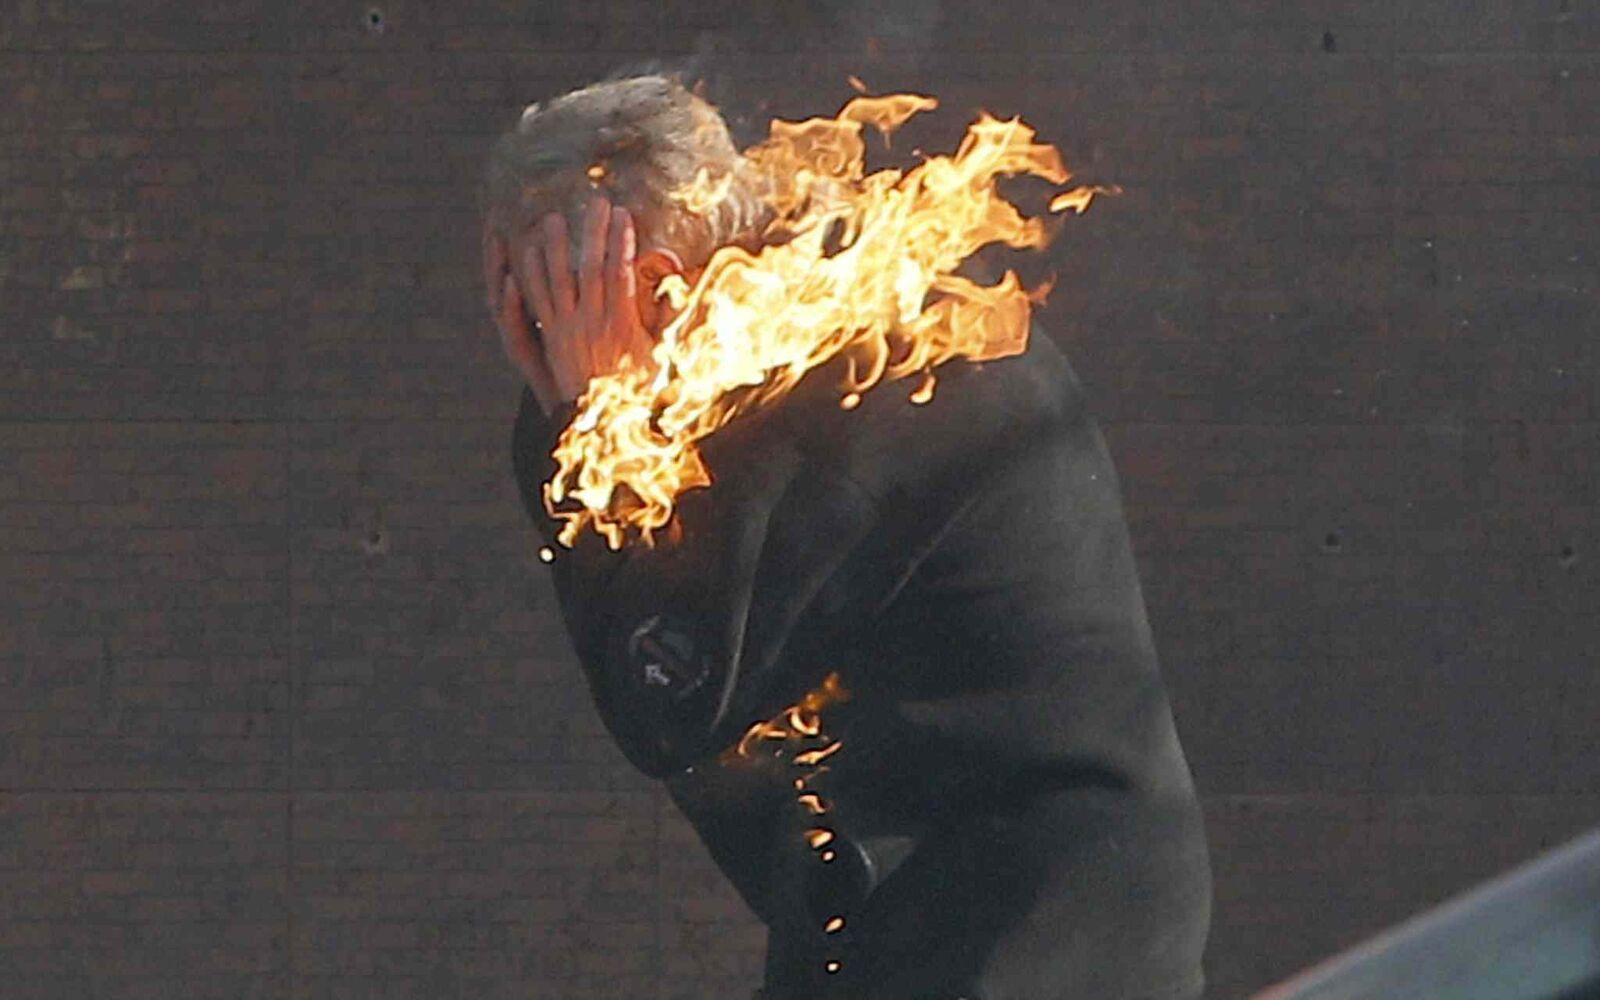 An anti-government protester is engulfed in flames during clashes with riot police outside Ukraine's parliament in Kyiv on Tuesday. (Efrem Lukatsky / The Associated Press)